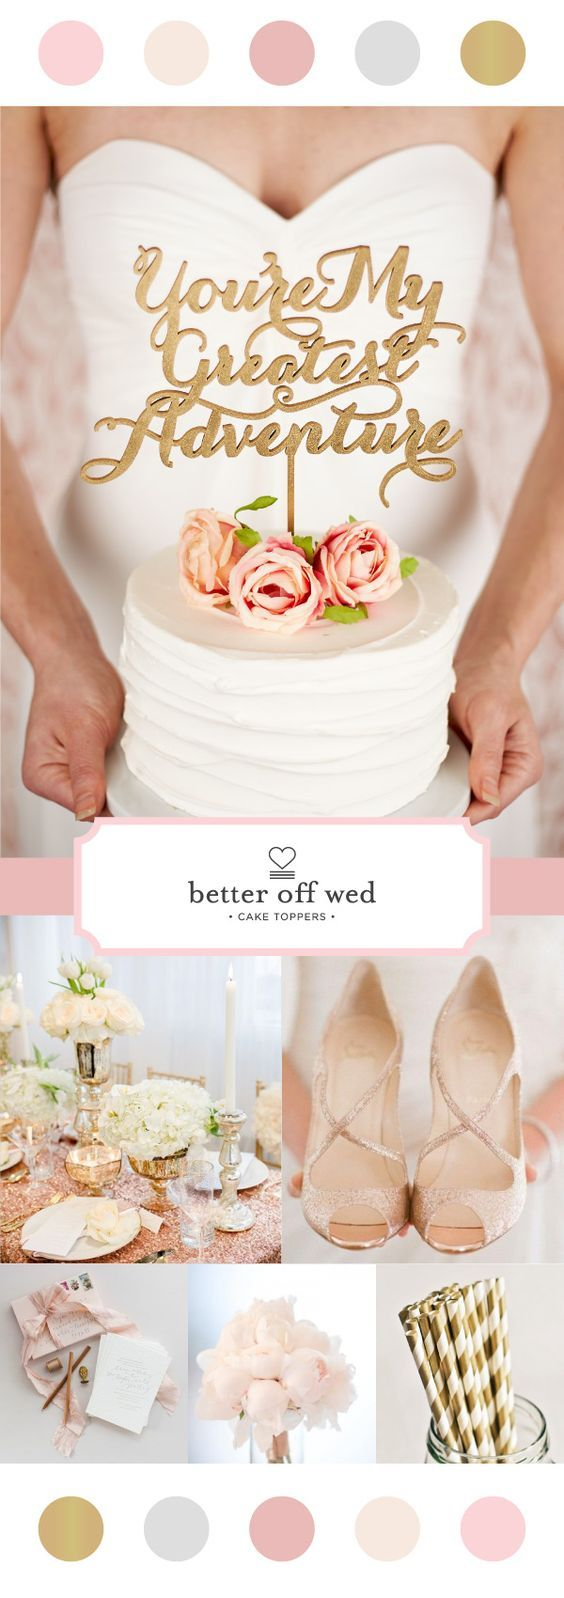 Color Crush: Blush and gold wedding fabulousness! Cake topper by Better Off Wed www.betteroffwed.co